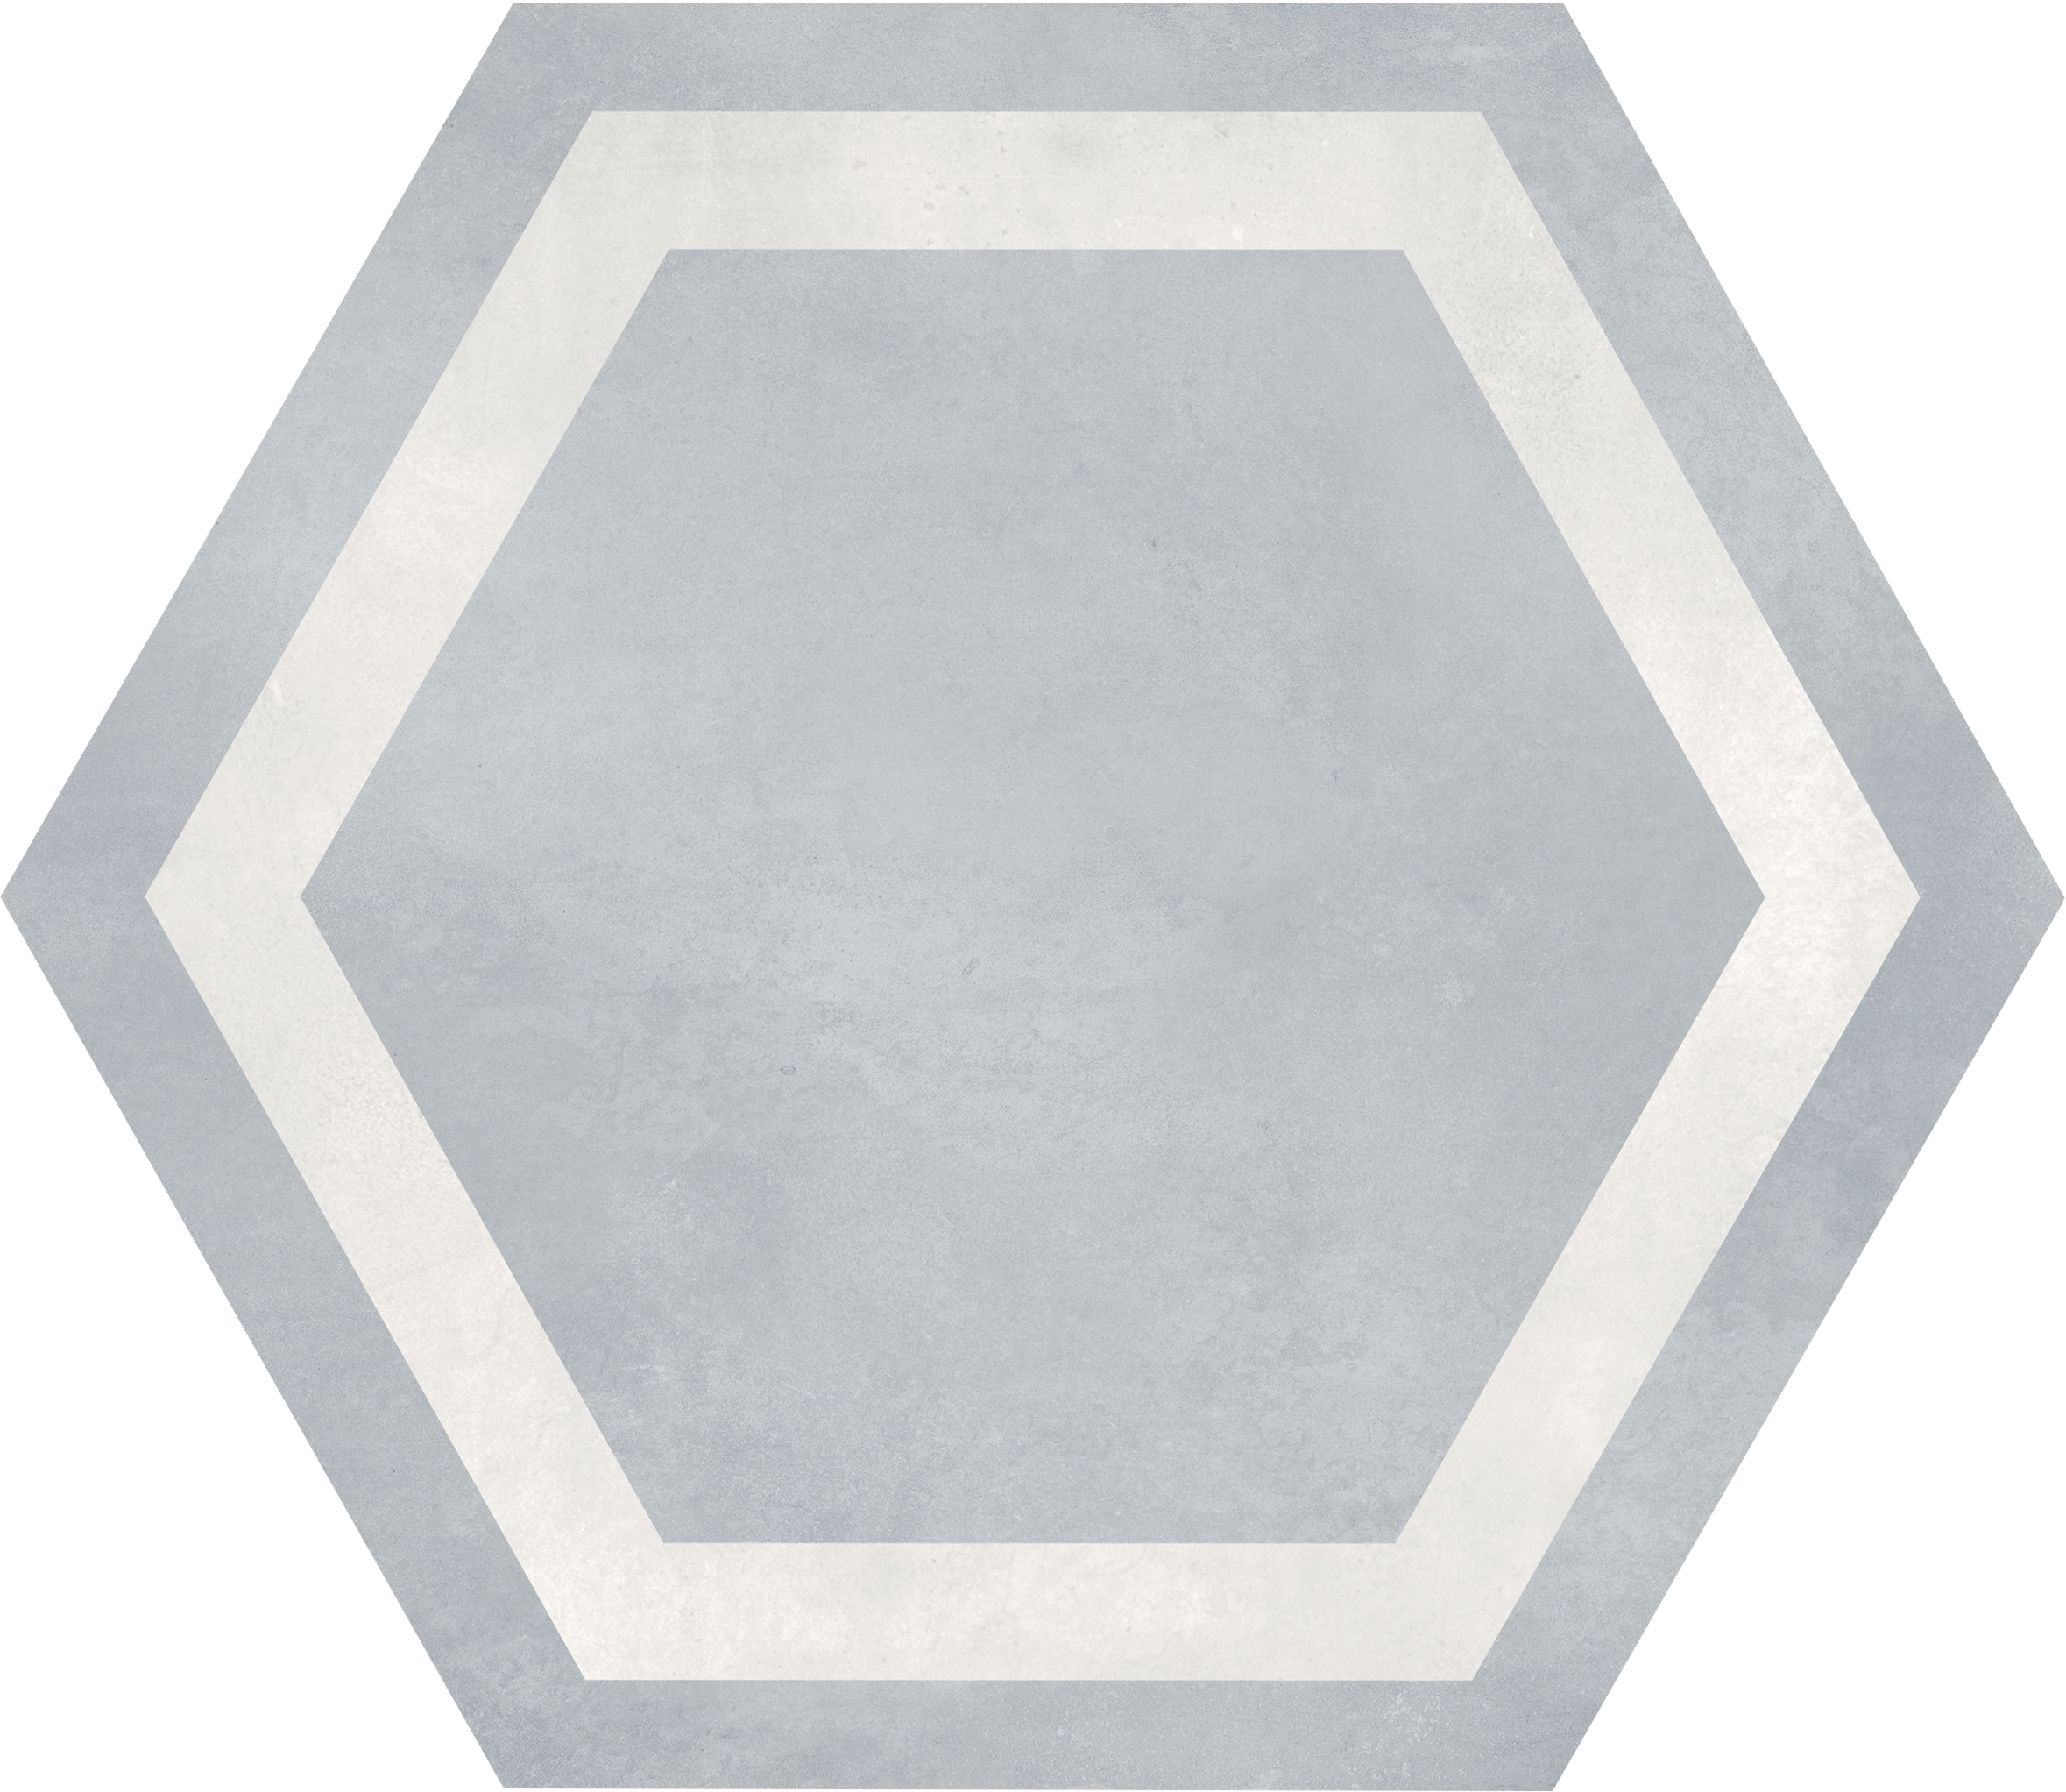 STP Hive Tide Hexagon Frame